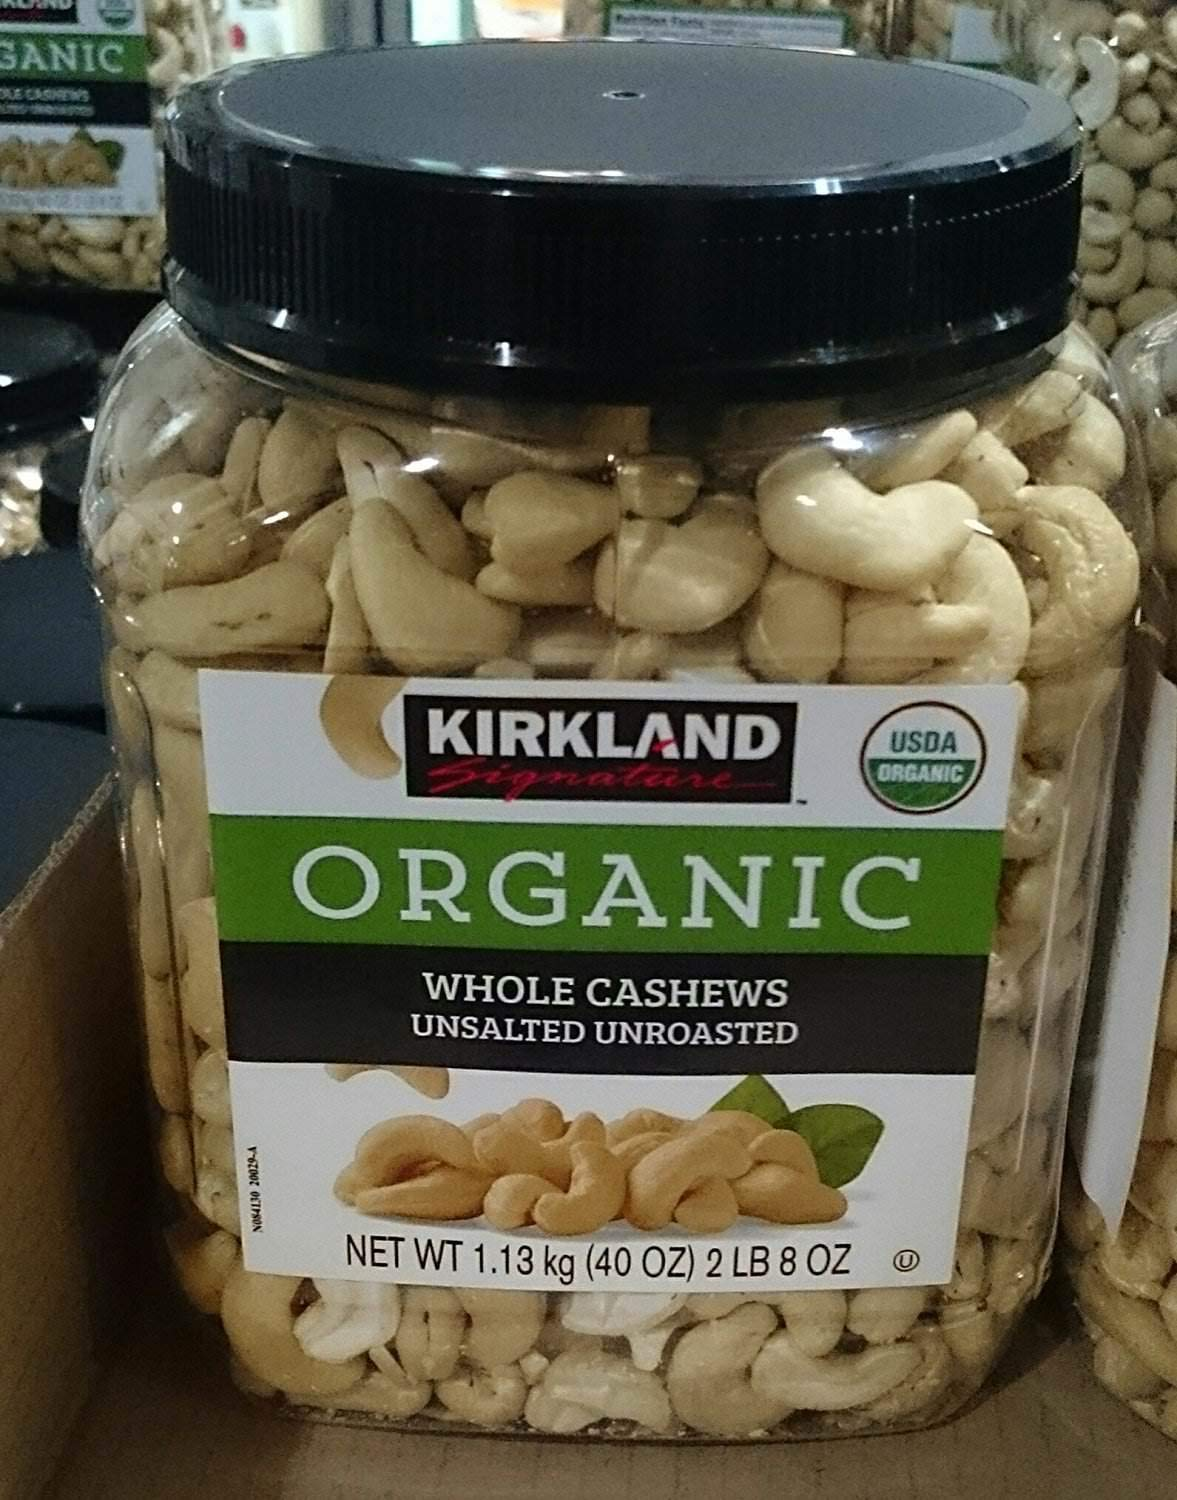 Kirkland Signatures Organic Whole Cashews Classic F Unroasted Unsalted Max 88% OFF